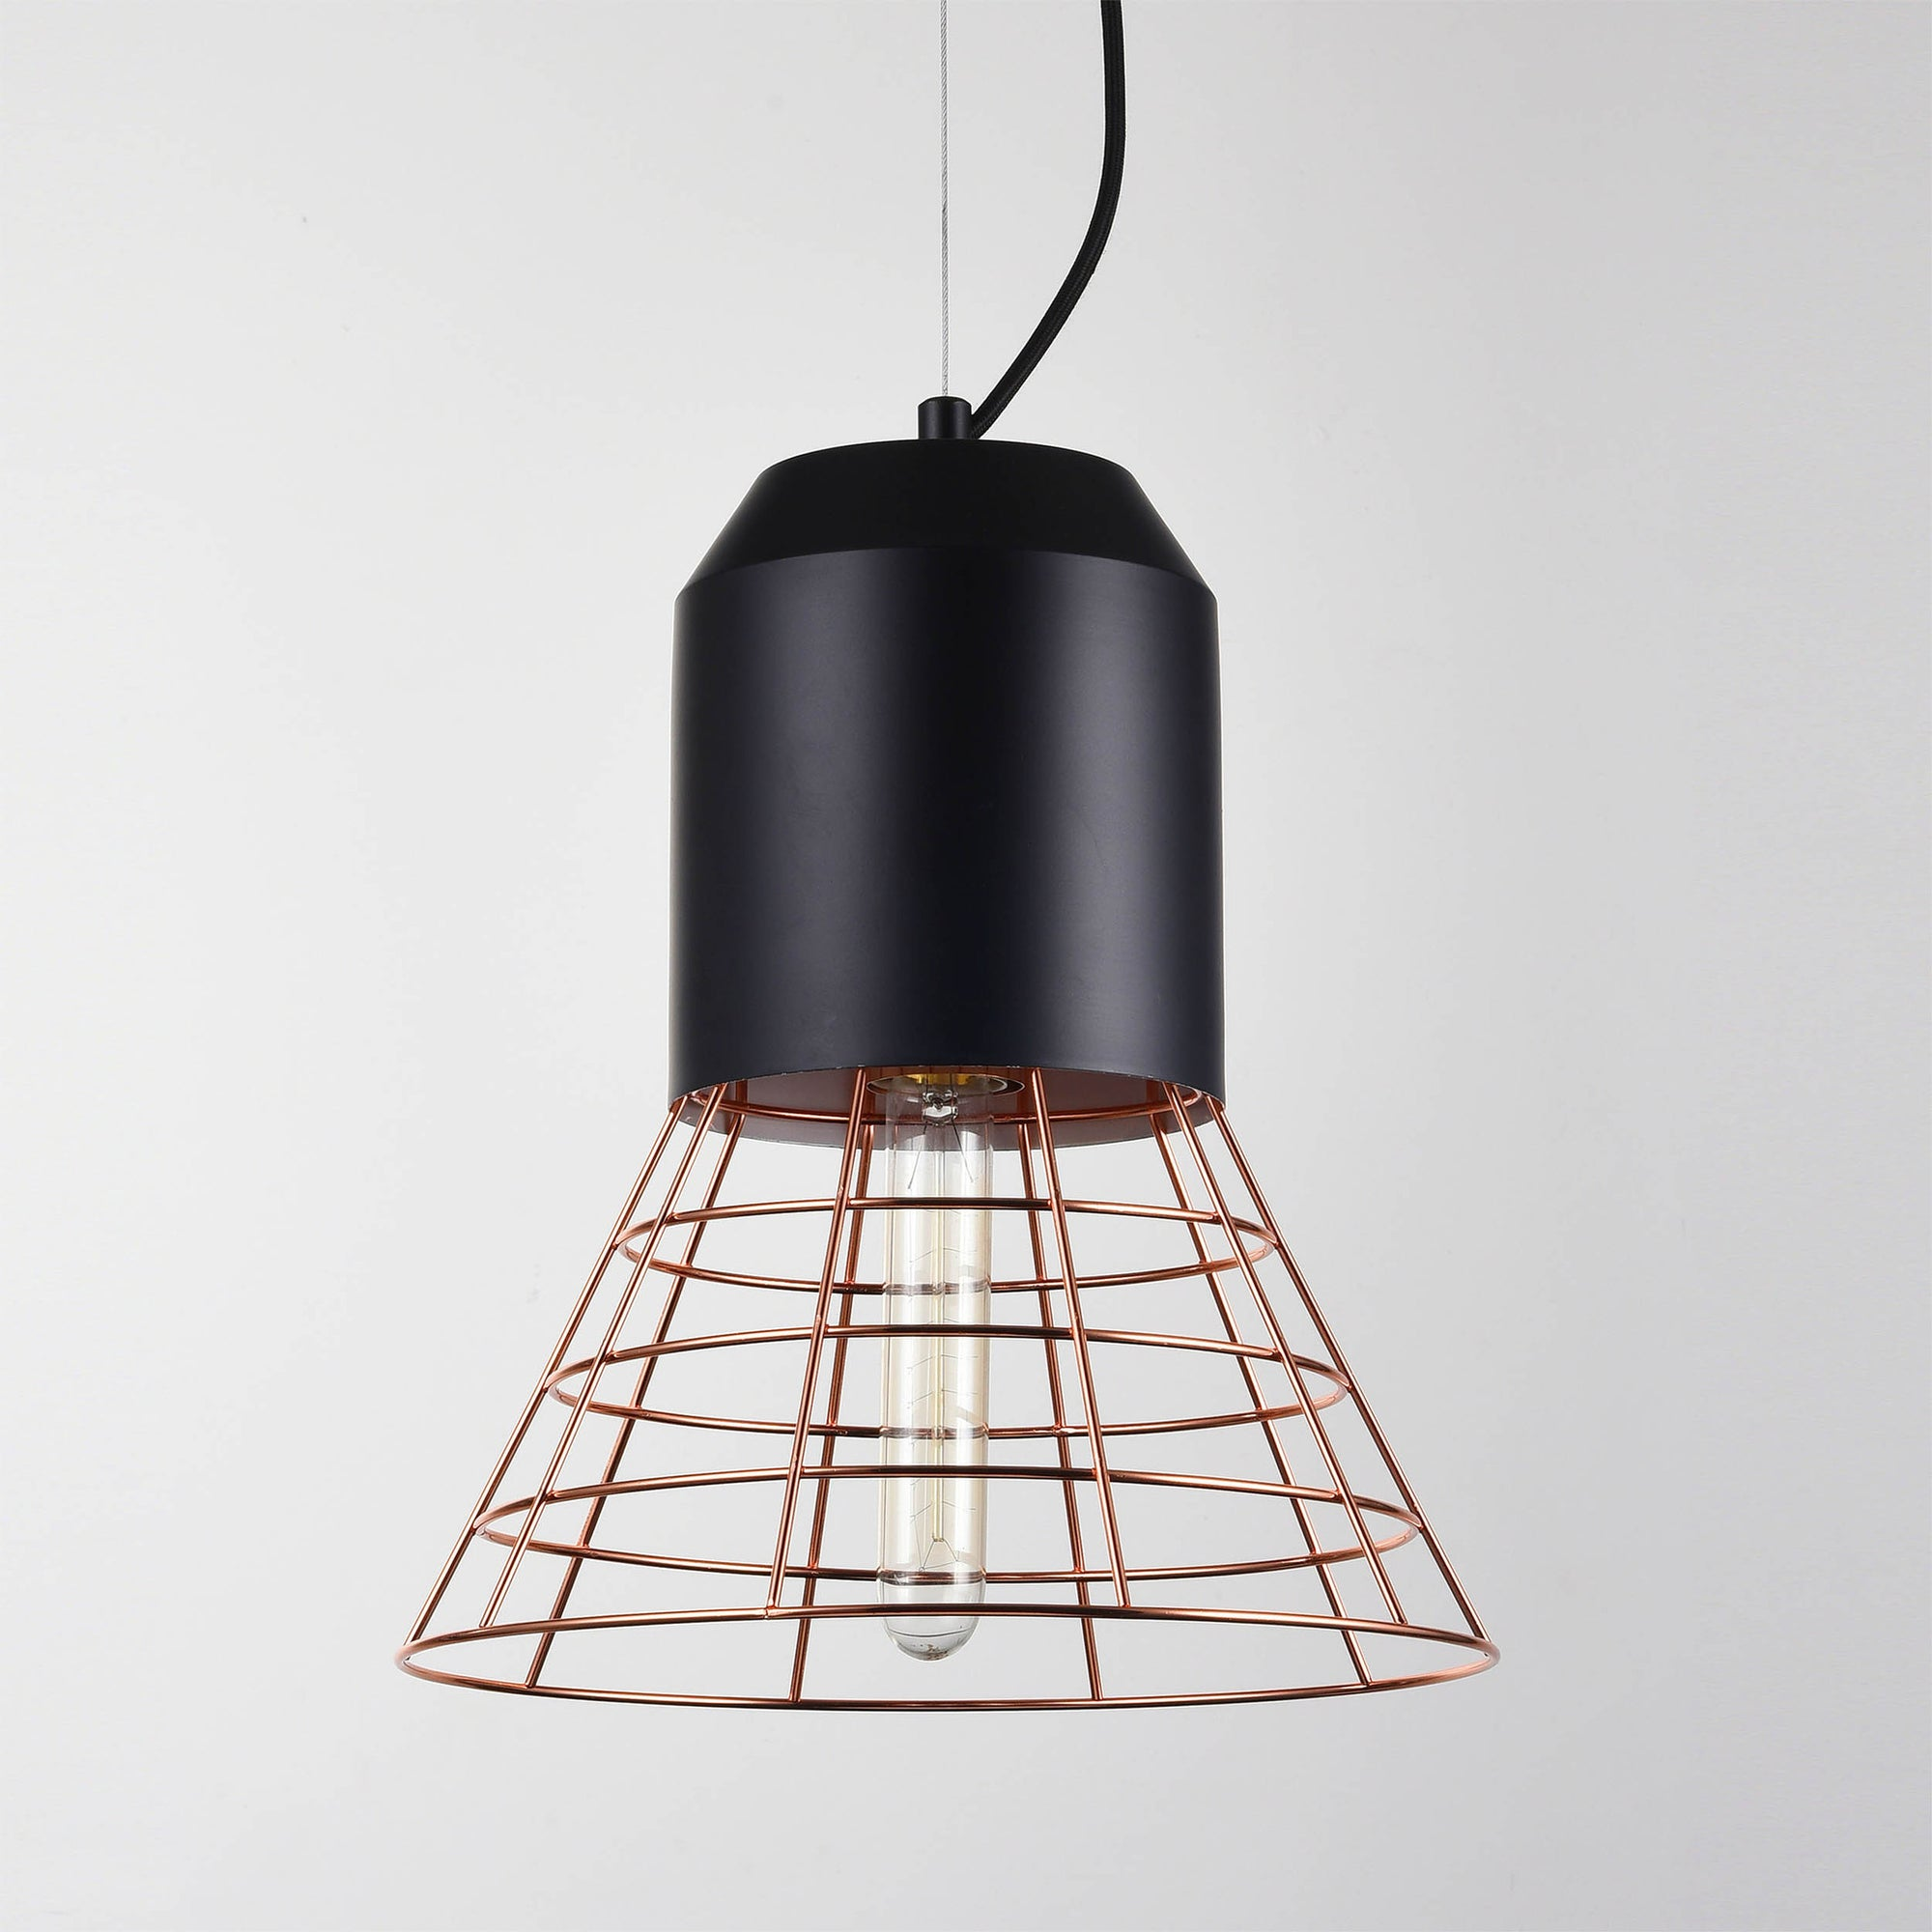 uk industrial co customised pendant lights light arkita